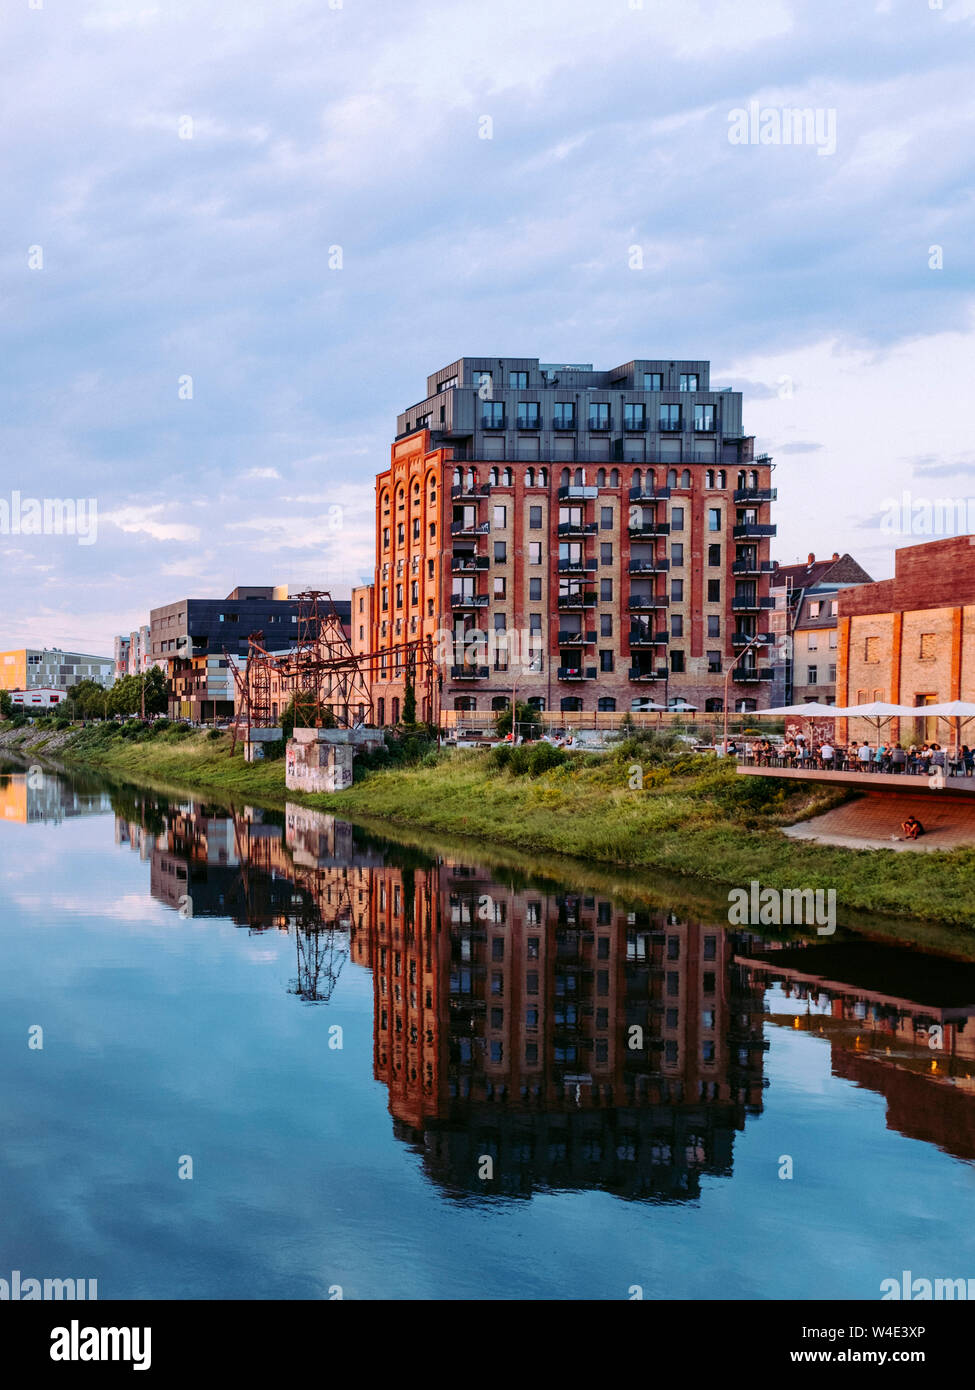 Jungbusch, Mannheim/Germany. Once a harbour and working class district, Jungbusch has become popular as a student and creative place, with lofts and t Stock Photo